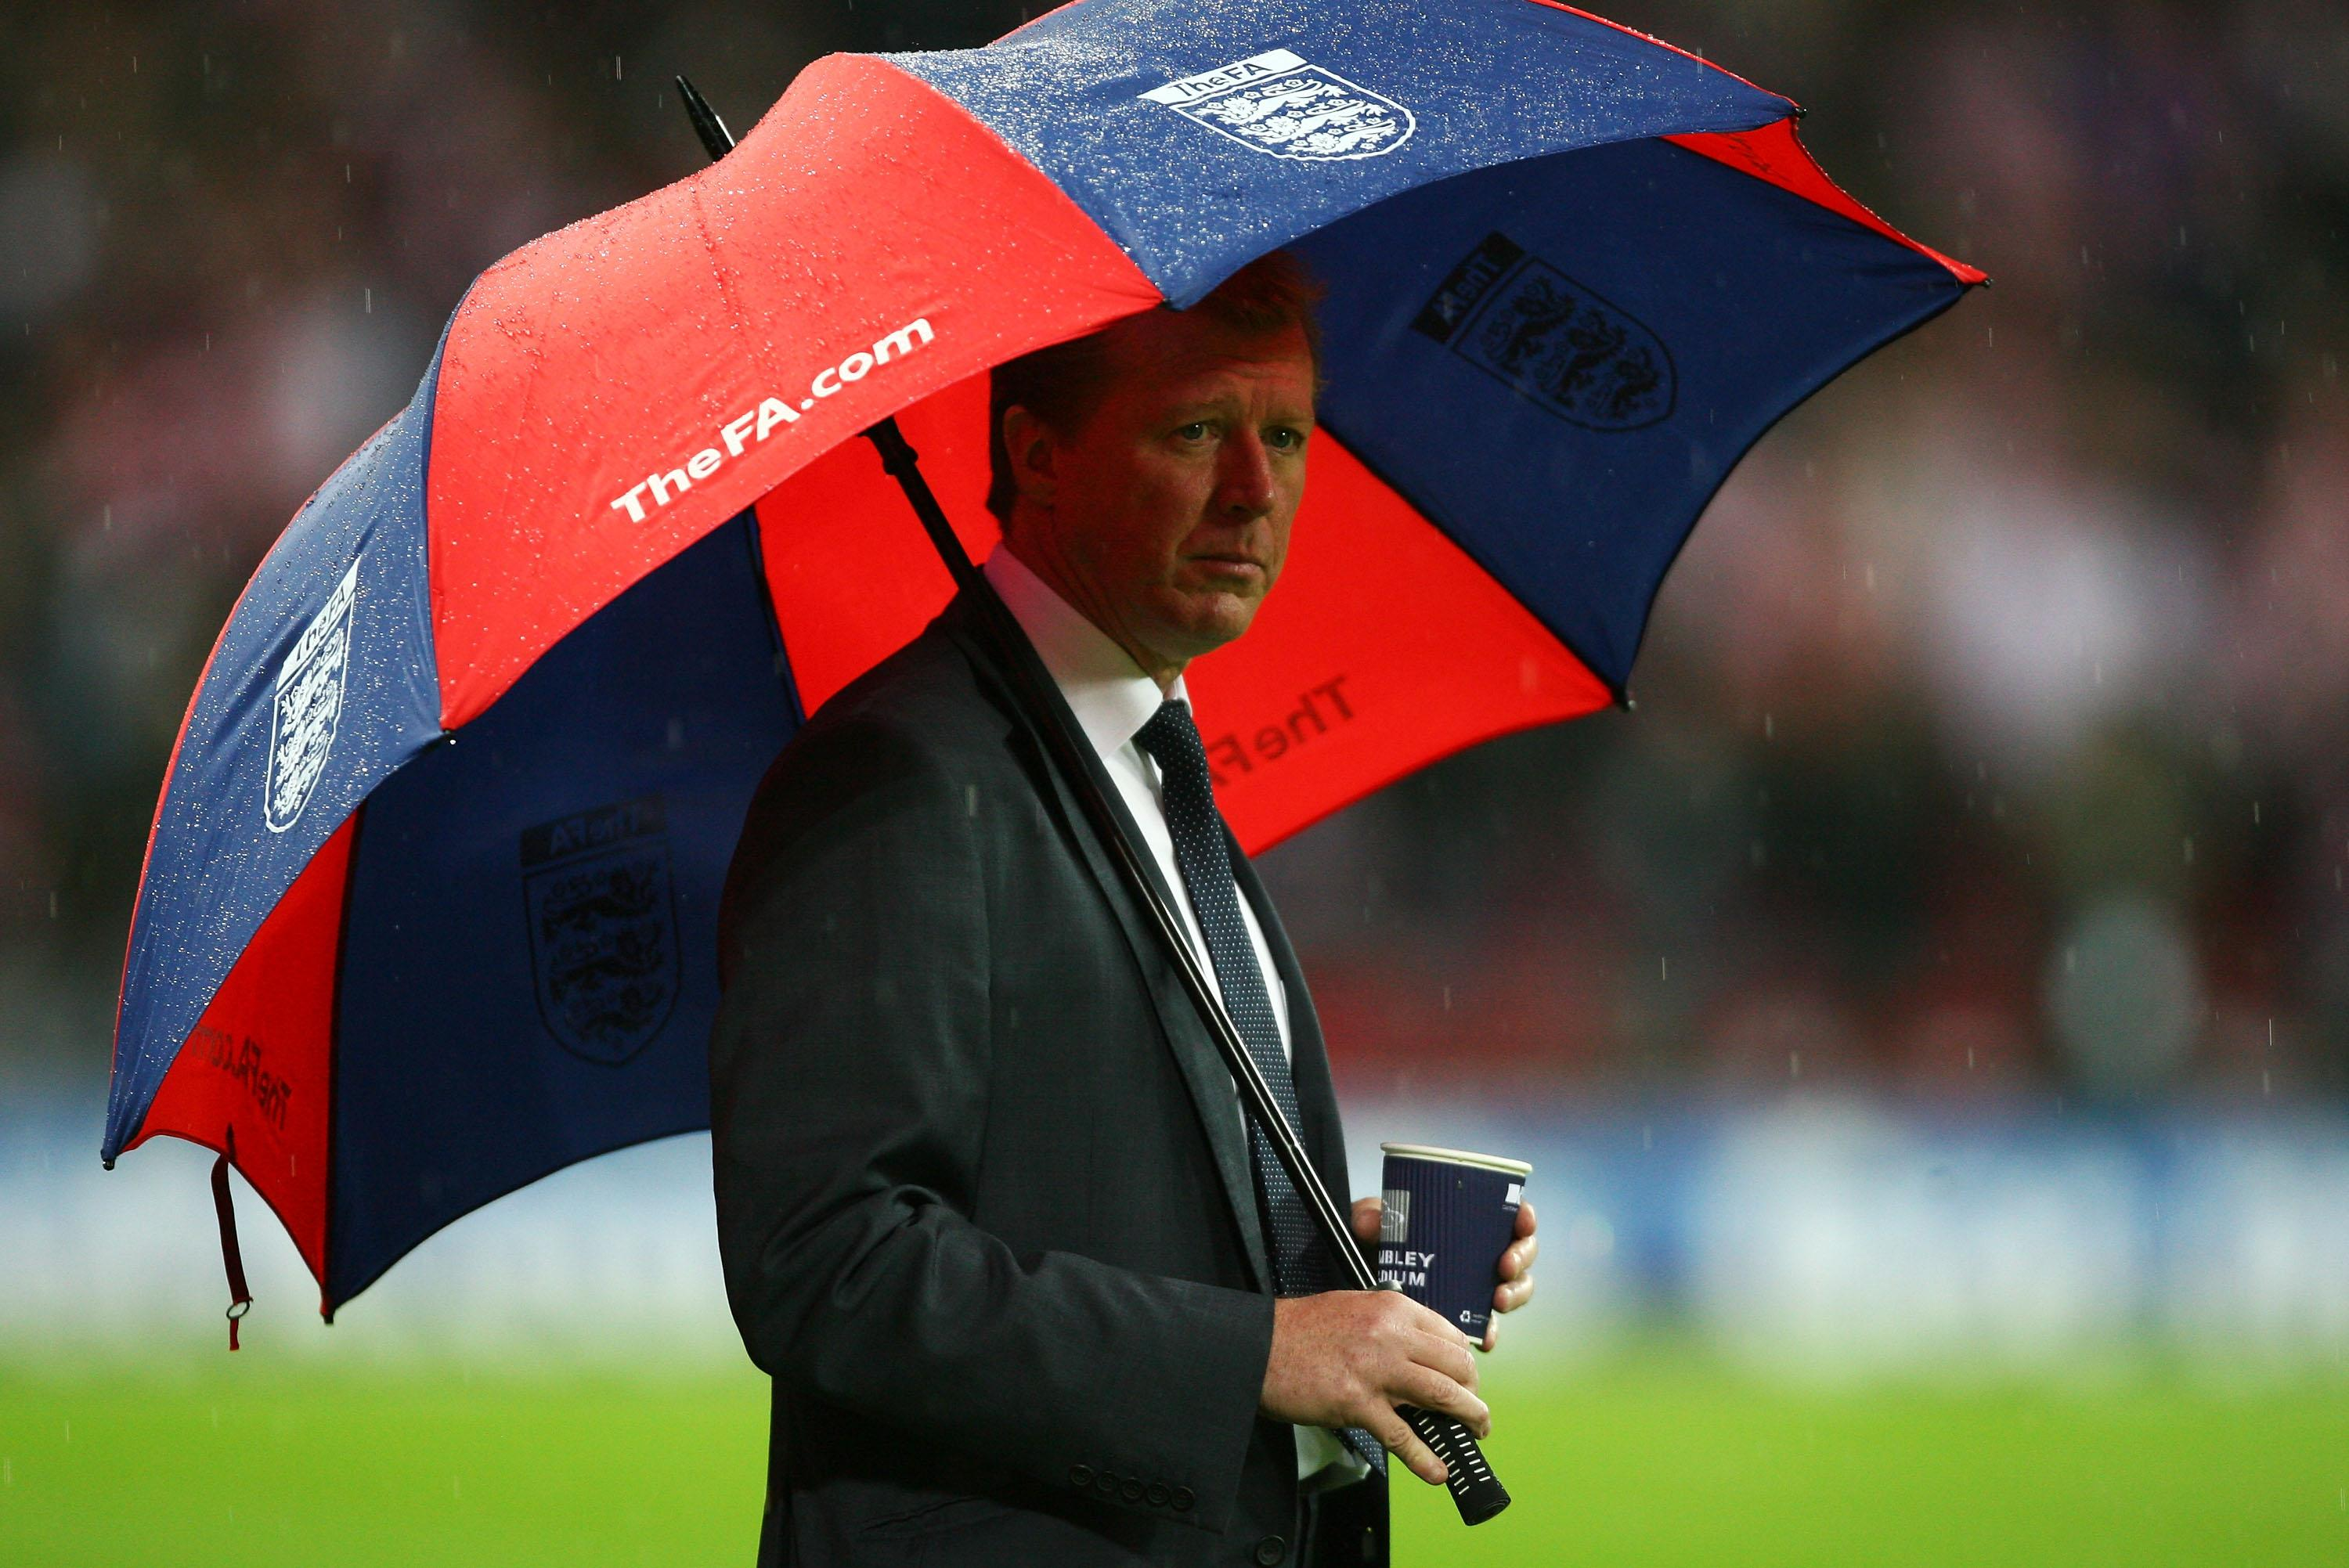 No England fan will ever forget McClaren's darkest hour in charge of the Three Lions against Croatia at Wembley